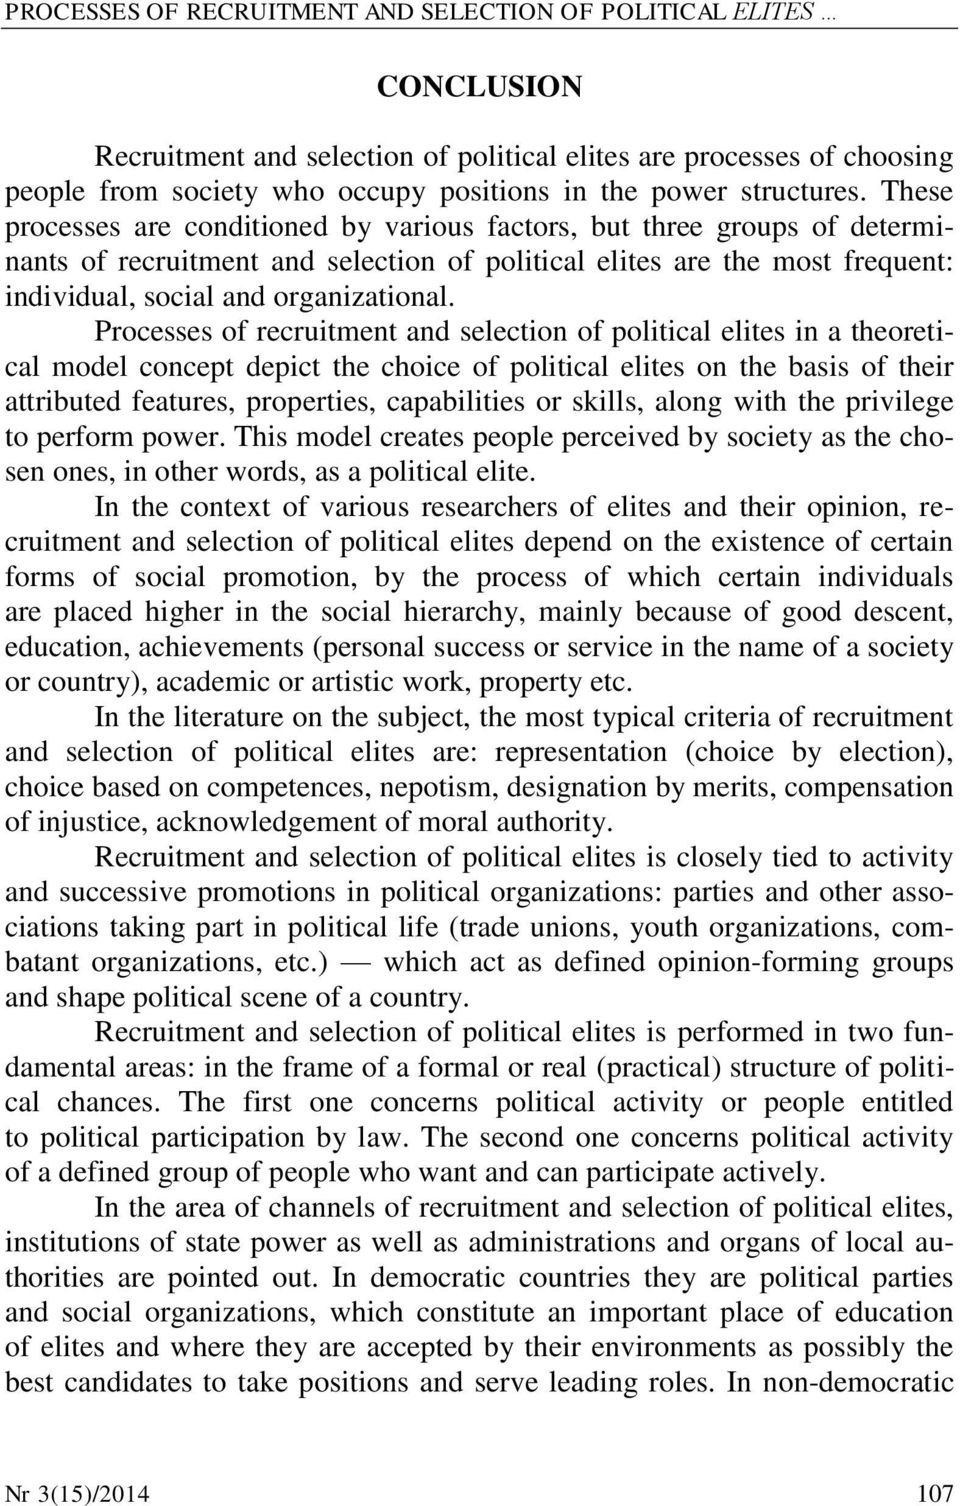 These processes are conditioned by various factors, but three groups of determinants of recruitment and selection of political elites are the most frequent: individual, social and organizational.